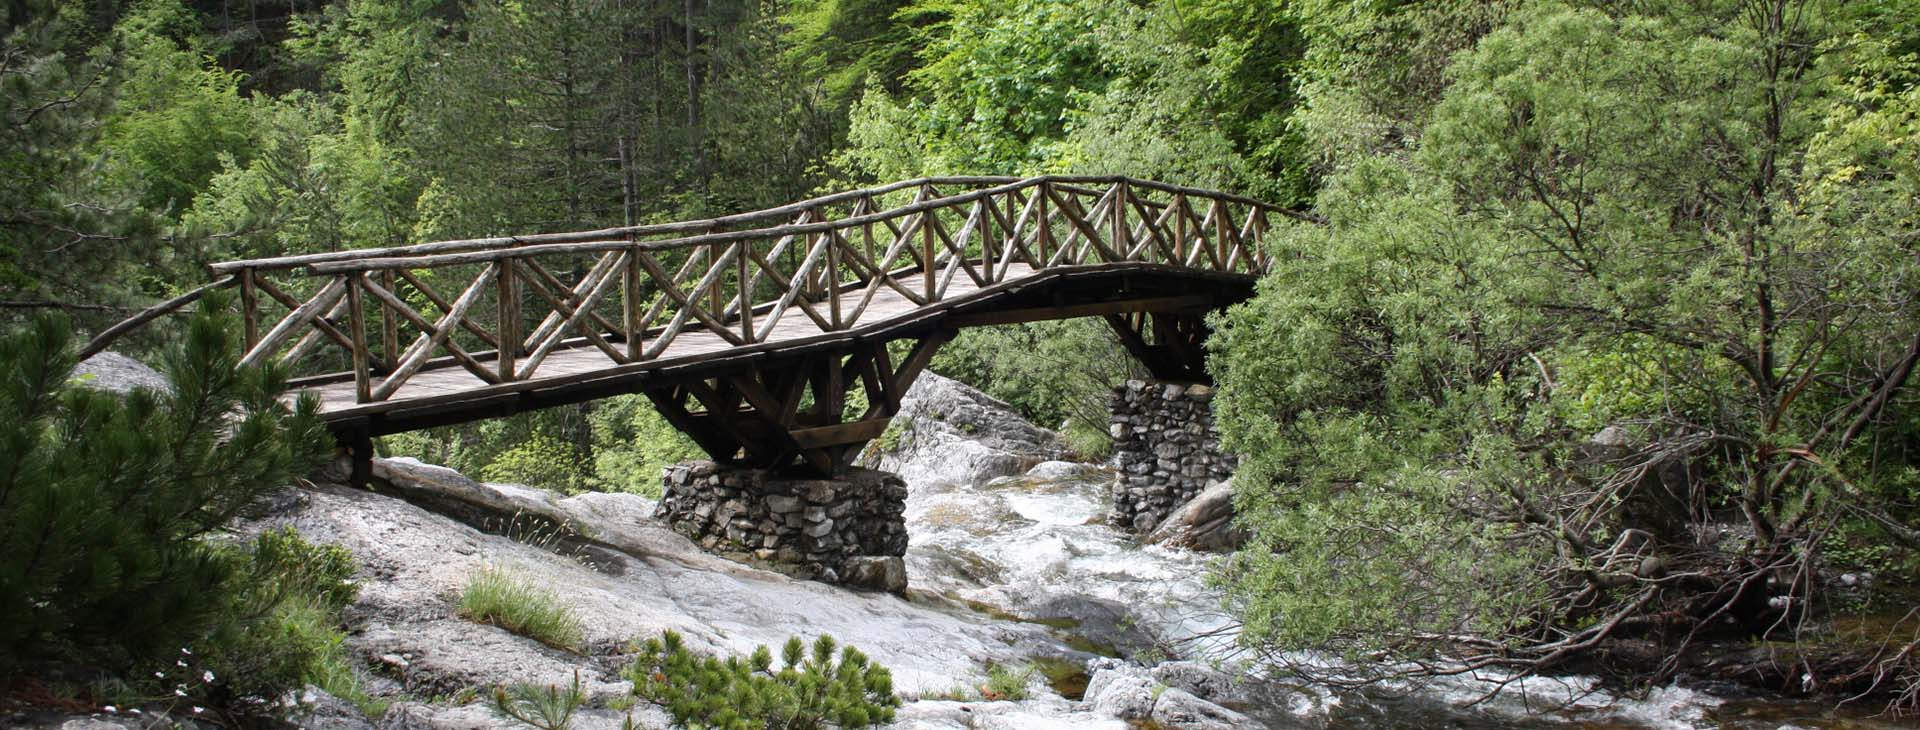 Bridge on Enipeas Gorge, Enipeas Gorge, Mt. Olympus, Pieria